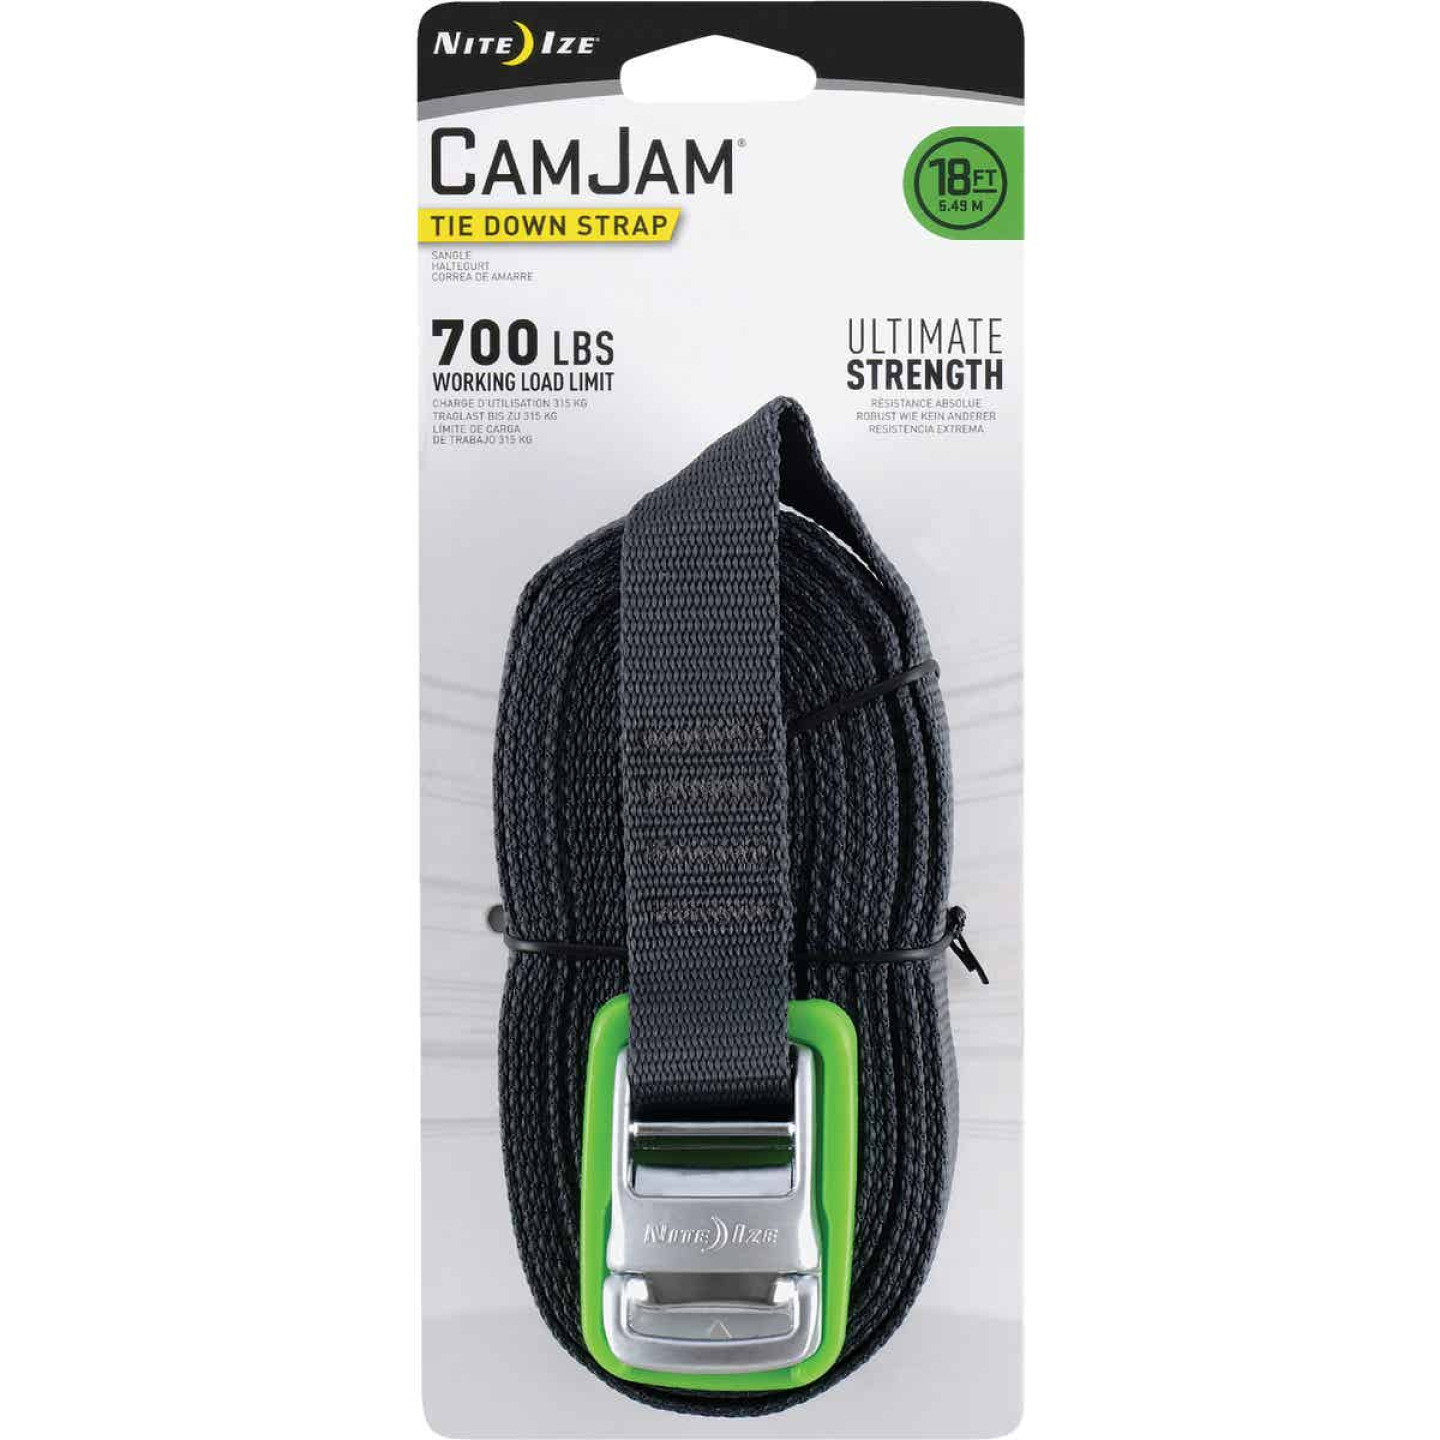 Nite Ize CamJam 1 In. x 18 Ft. 700-Lb. Working Load Limit Tie-Down Strap Image 1